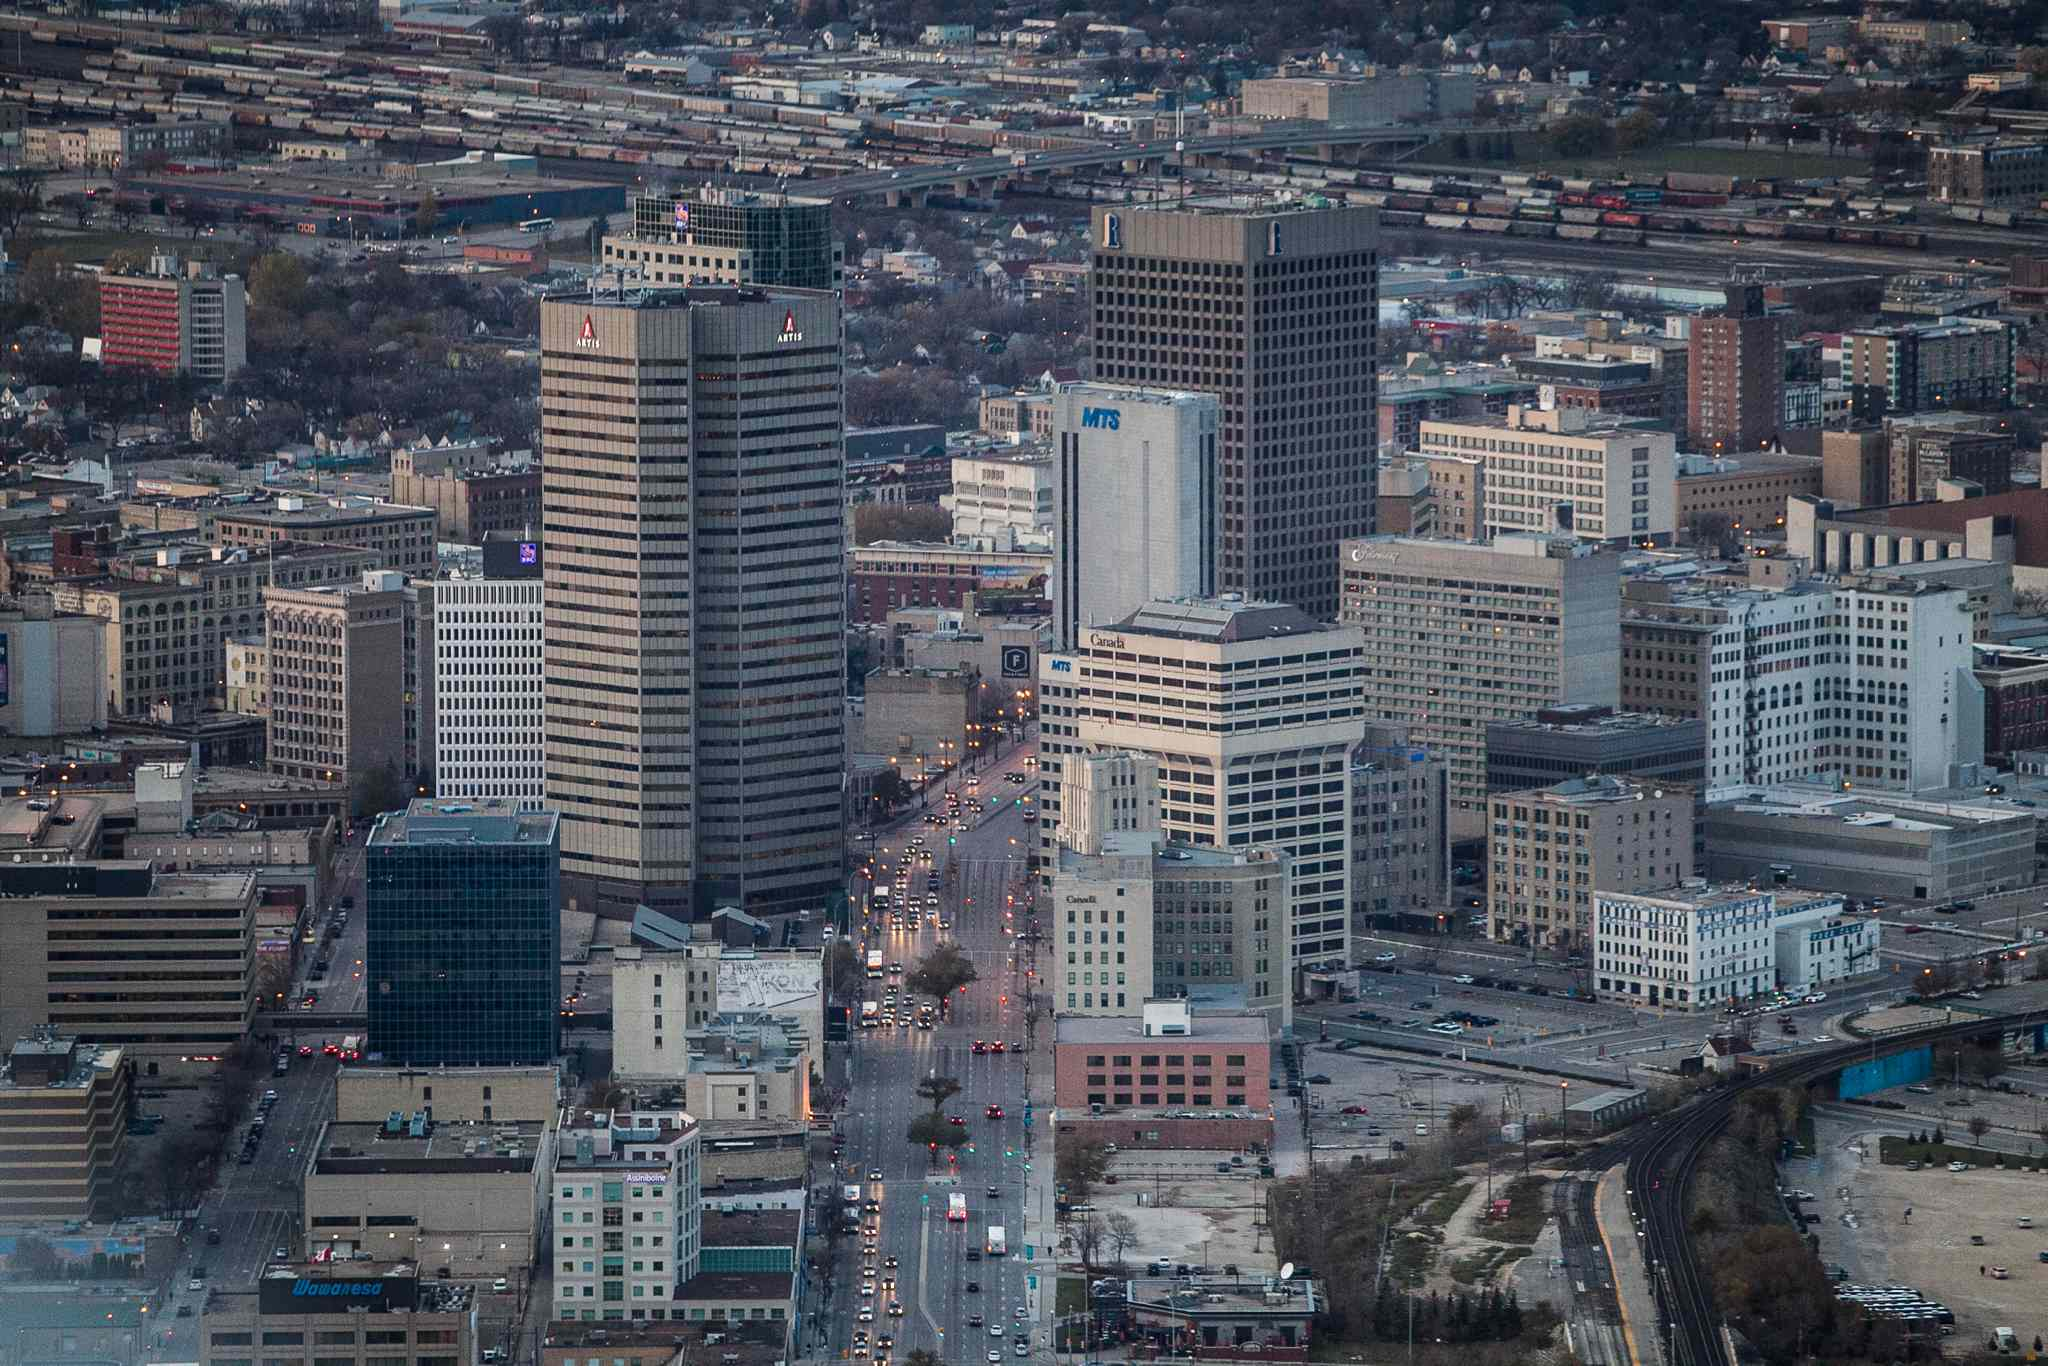 Winnipeg skyline aerial photos for the Red, Assiniboine, La Salle, and Seine River Project. Main Street and Winnipeg's Downtown skyscrapers in the early evening. 151026 - Monday, October 26, 2015 -  MIKE DEAL / WINNIPEG FREE PRESS